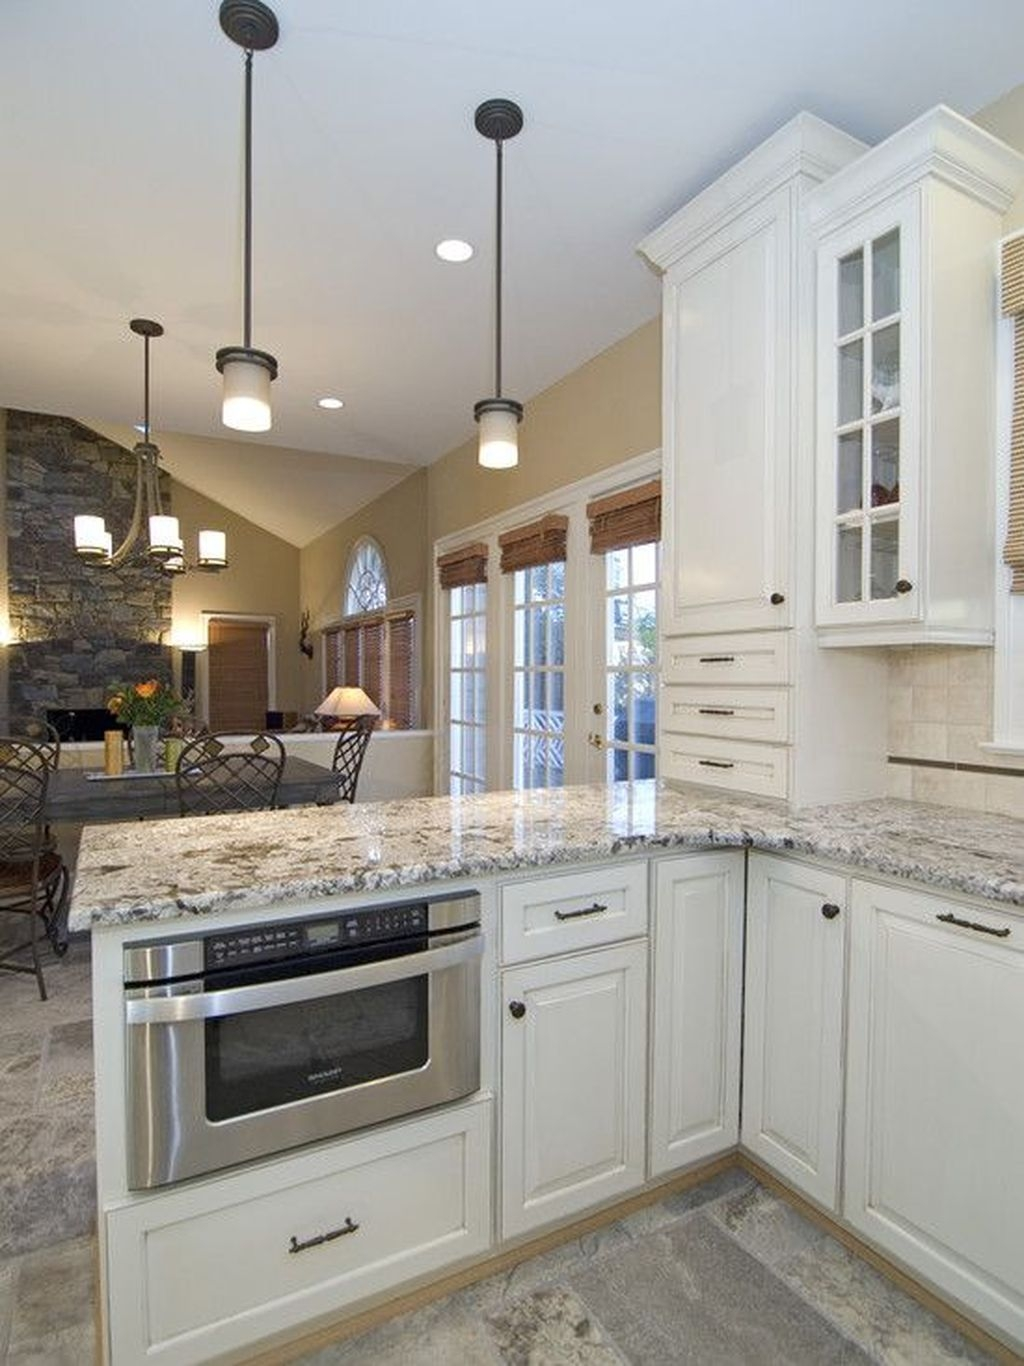 Awesome Small Kitchen Remodel Ideas14